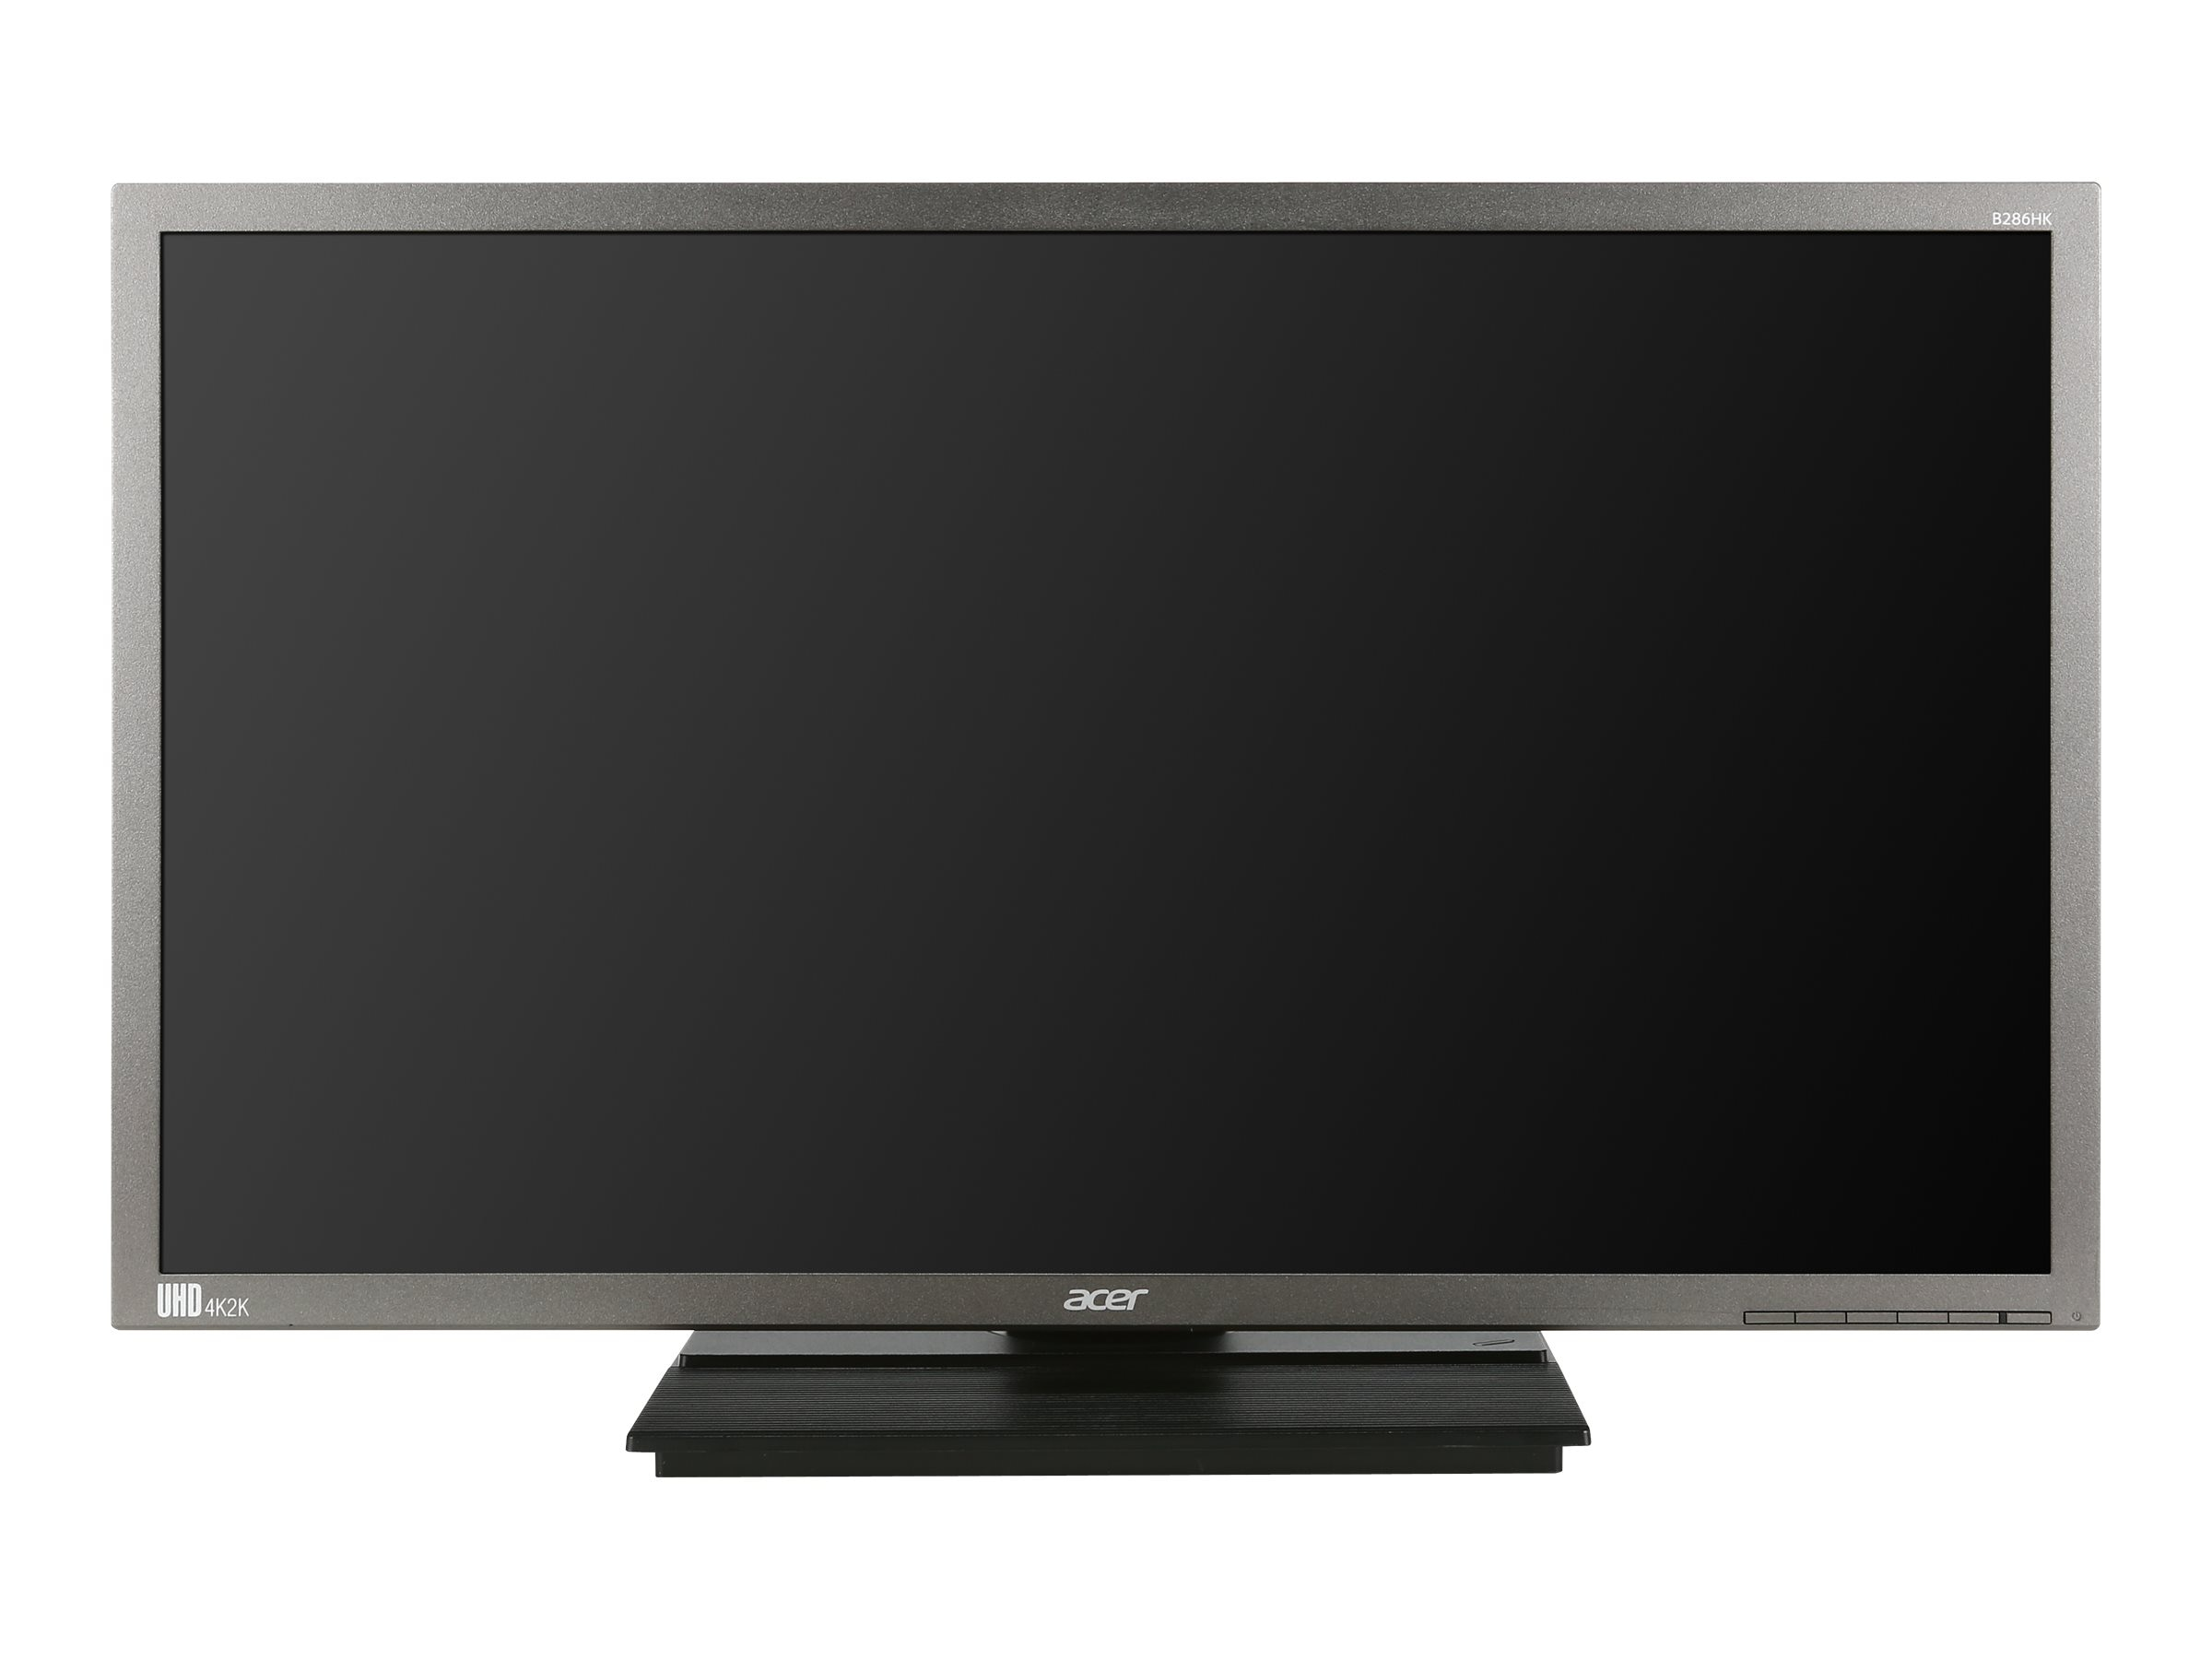 Acer 28 B286HK ymjdpprz 4K LED-LCD Display, Black, UM.PB6AA.003